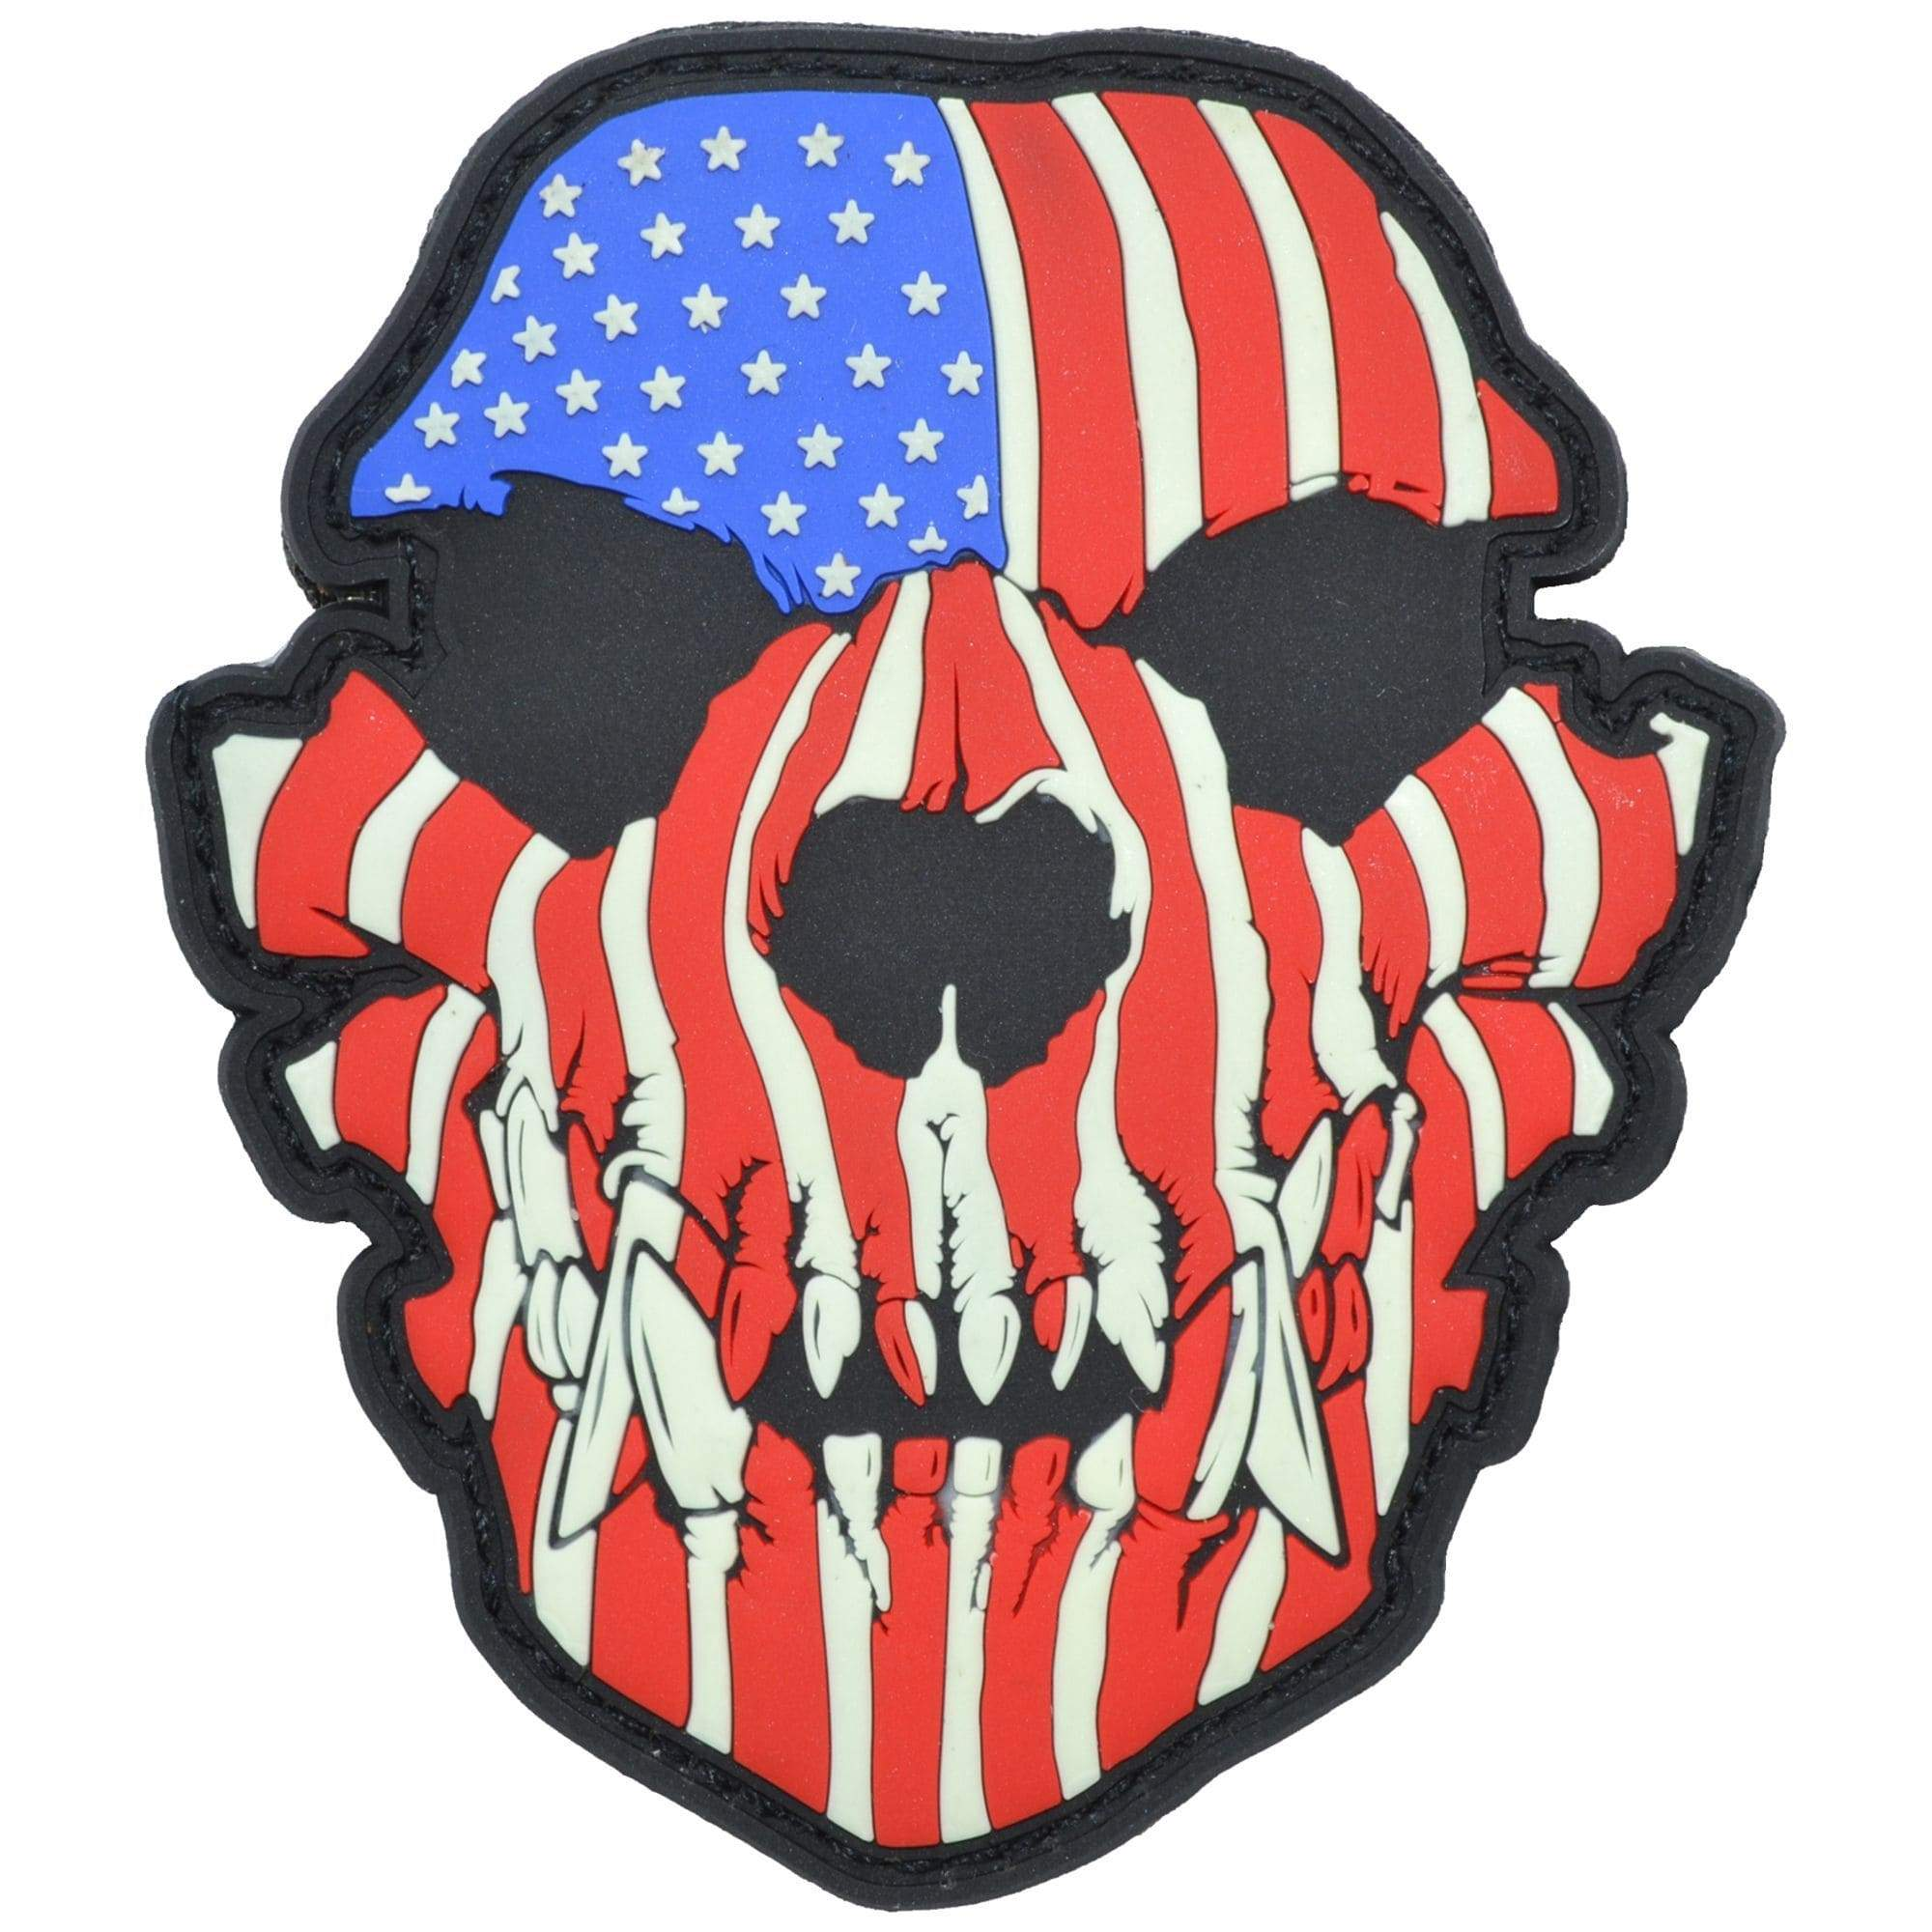 Glow in the Dark Canine Skull USA Flag - 3x3.5 PVC Patch